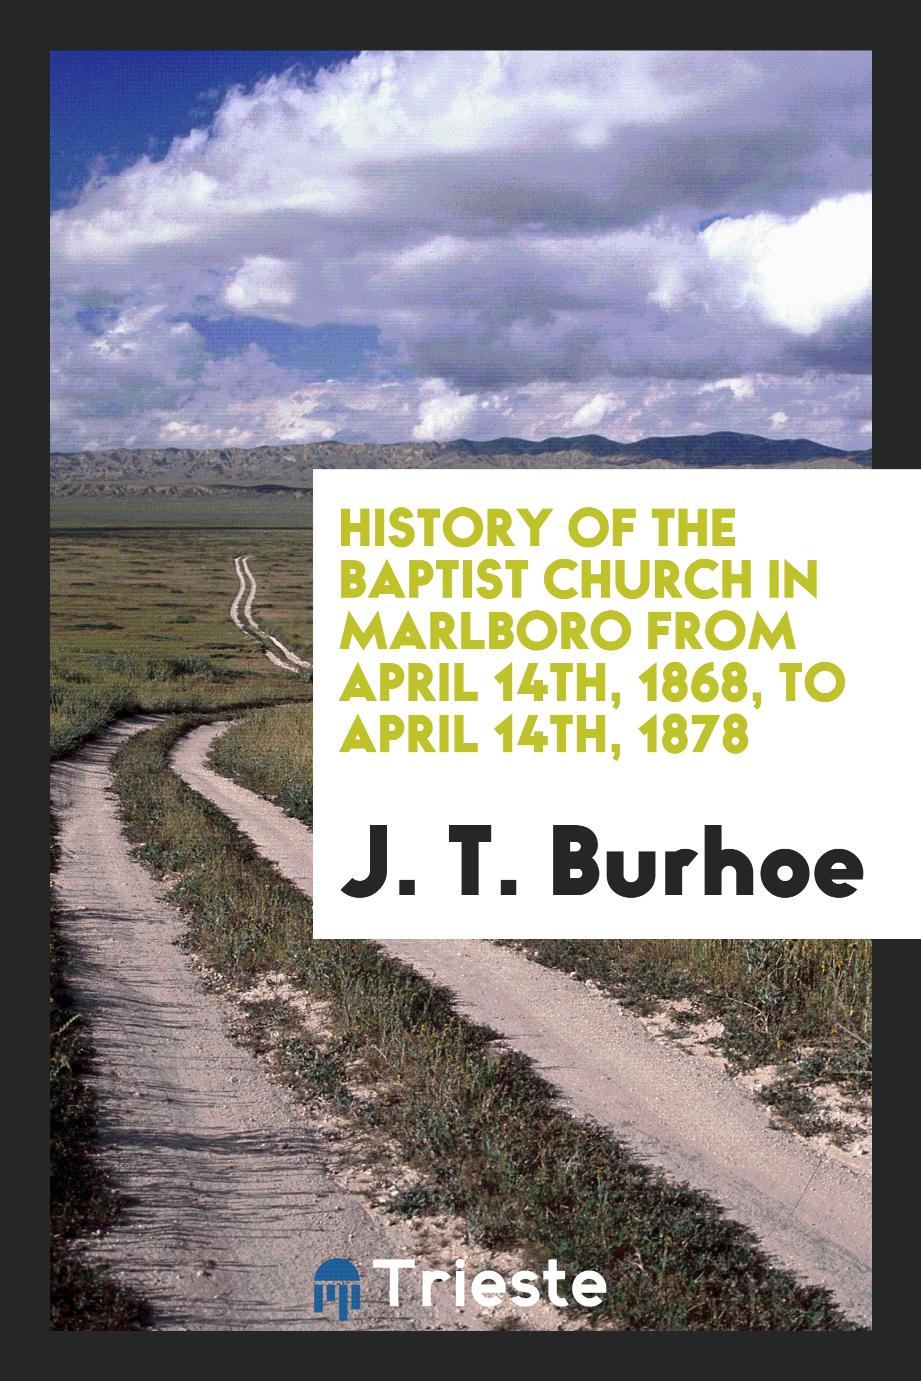 History of the Baptist Church in Marlboro from April 14th, 1868, to April 14th, 1878